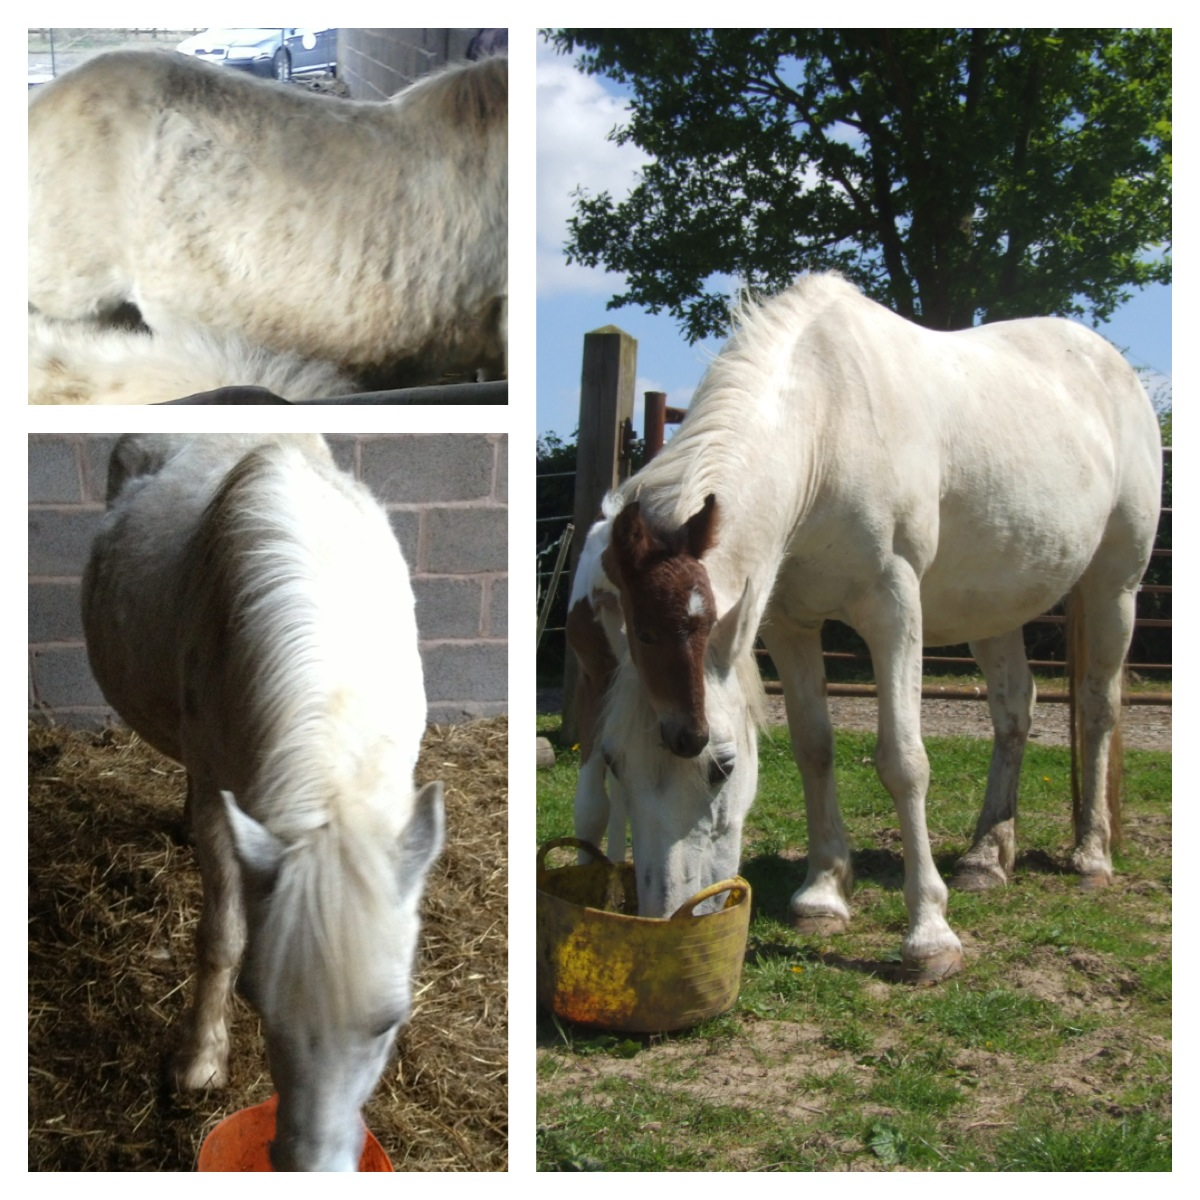 Ceiriad the horse from her rescue in February until foaling in June - meet Benjie